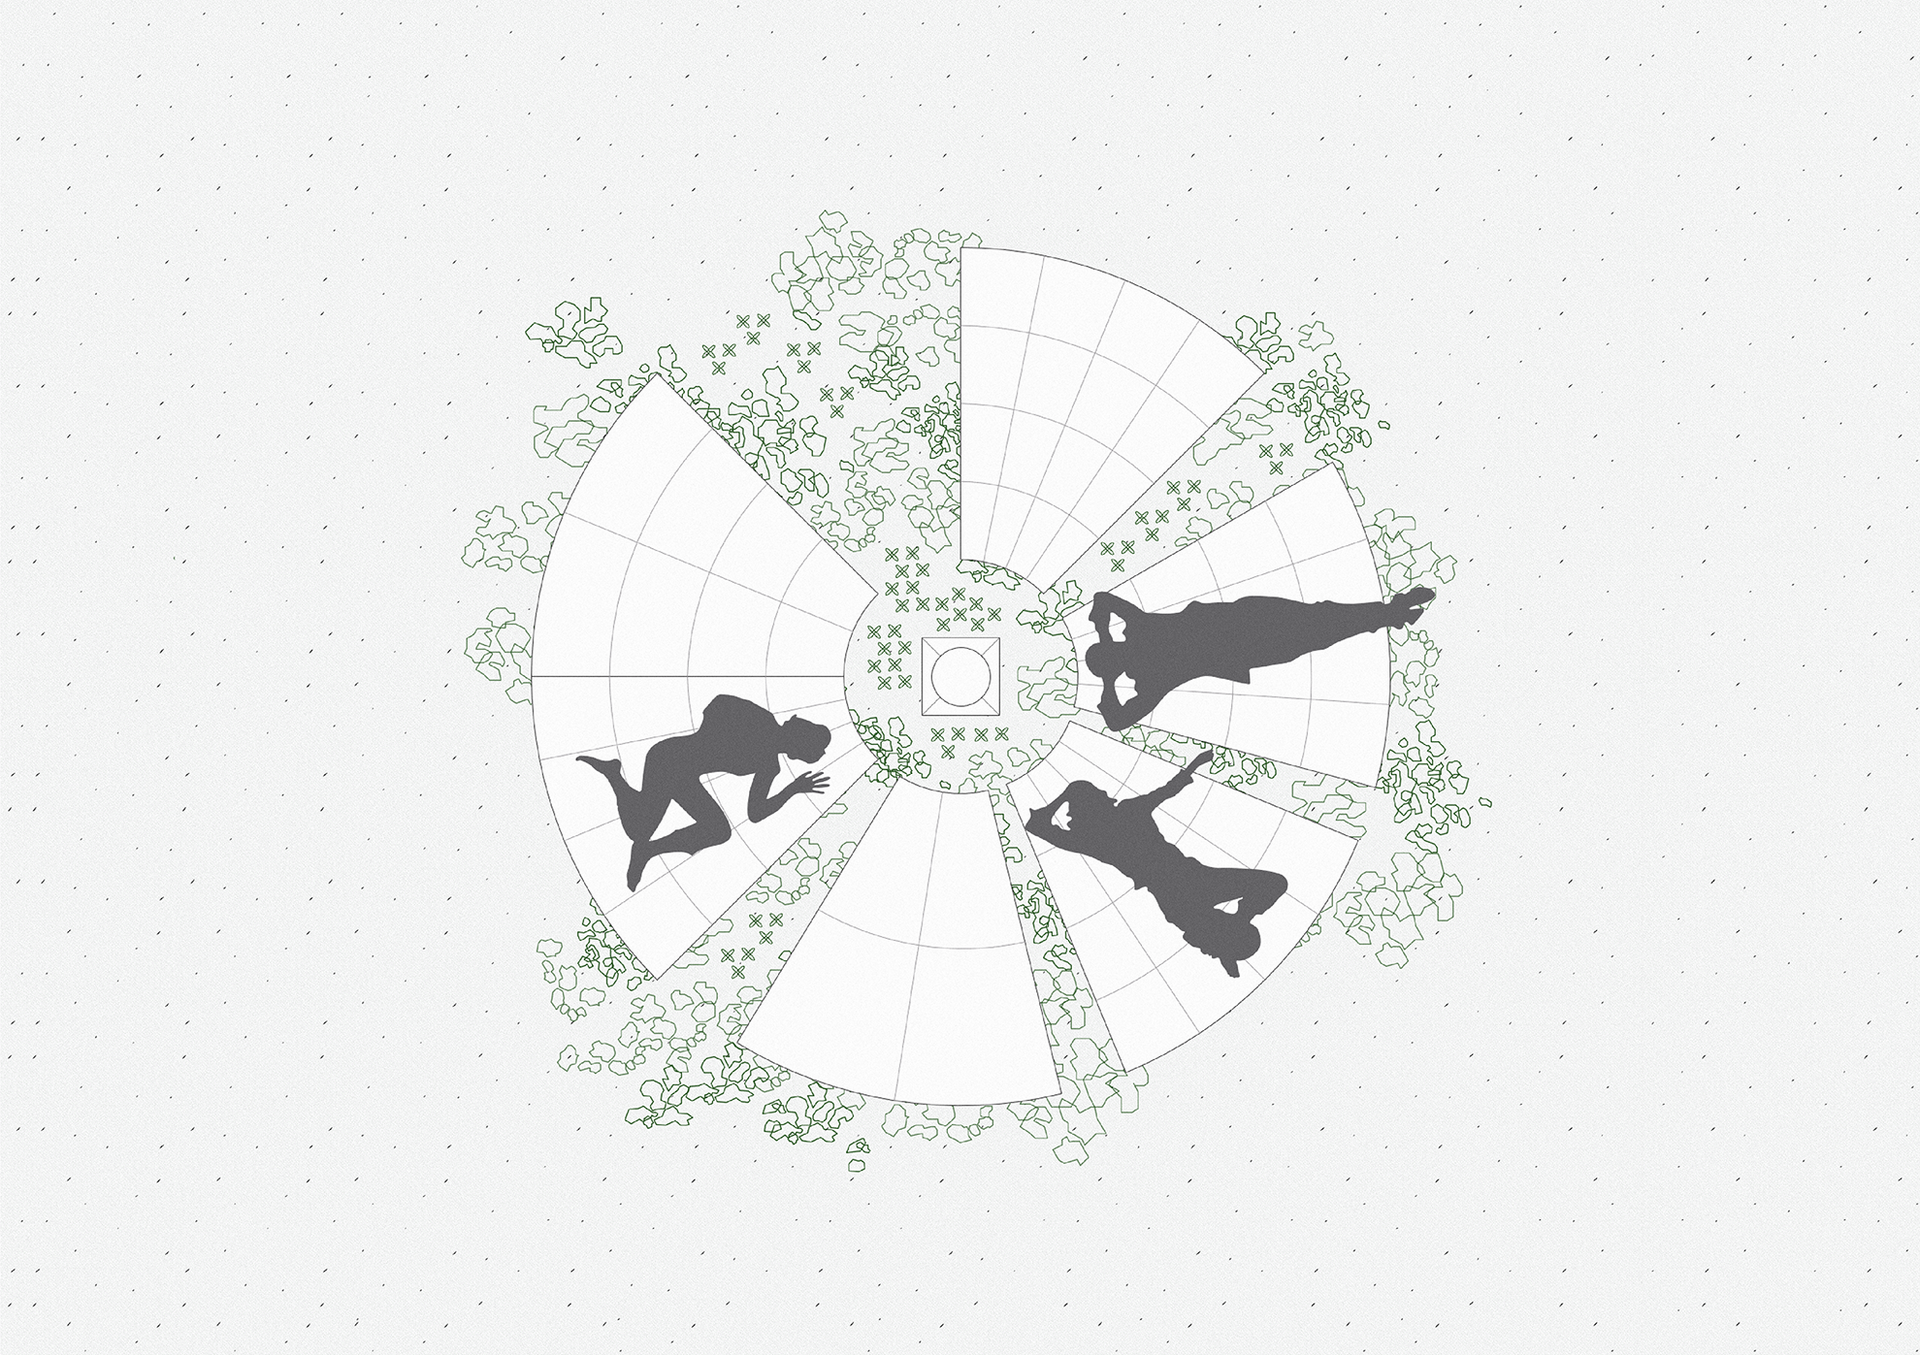 Circular positioning of the mats aims to connect and bring all species together in the space